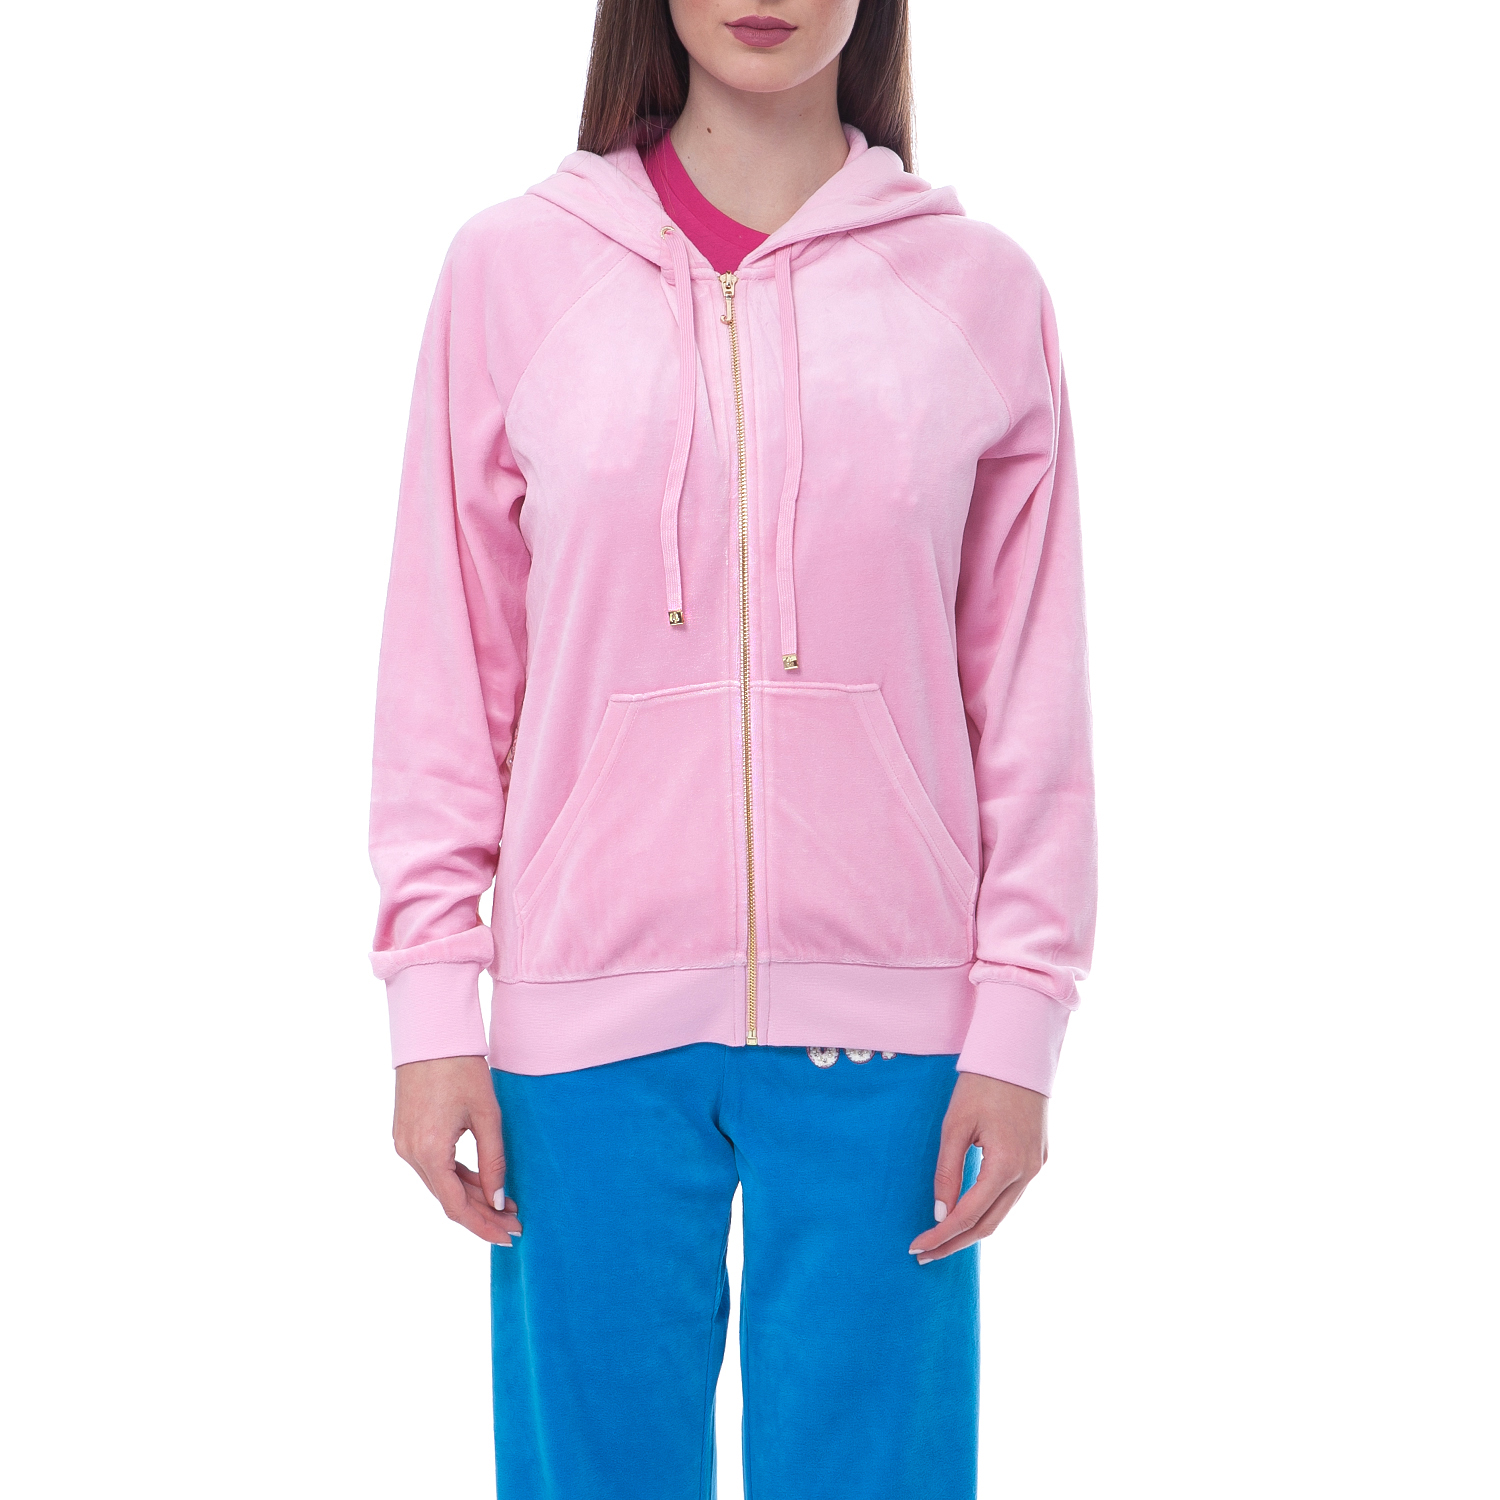 JUICY COUTURE - Γυναικεία ζακέτα Juicy Couture ροζ